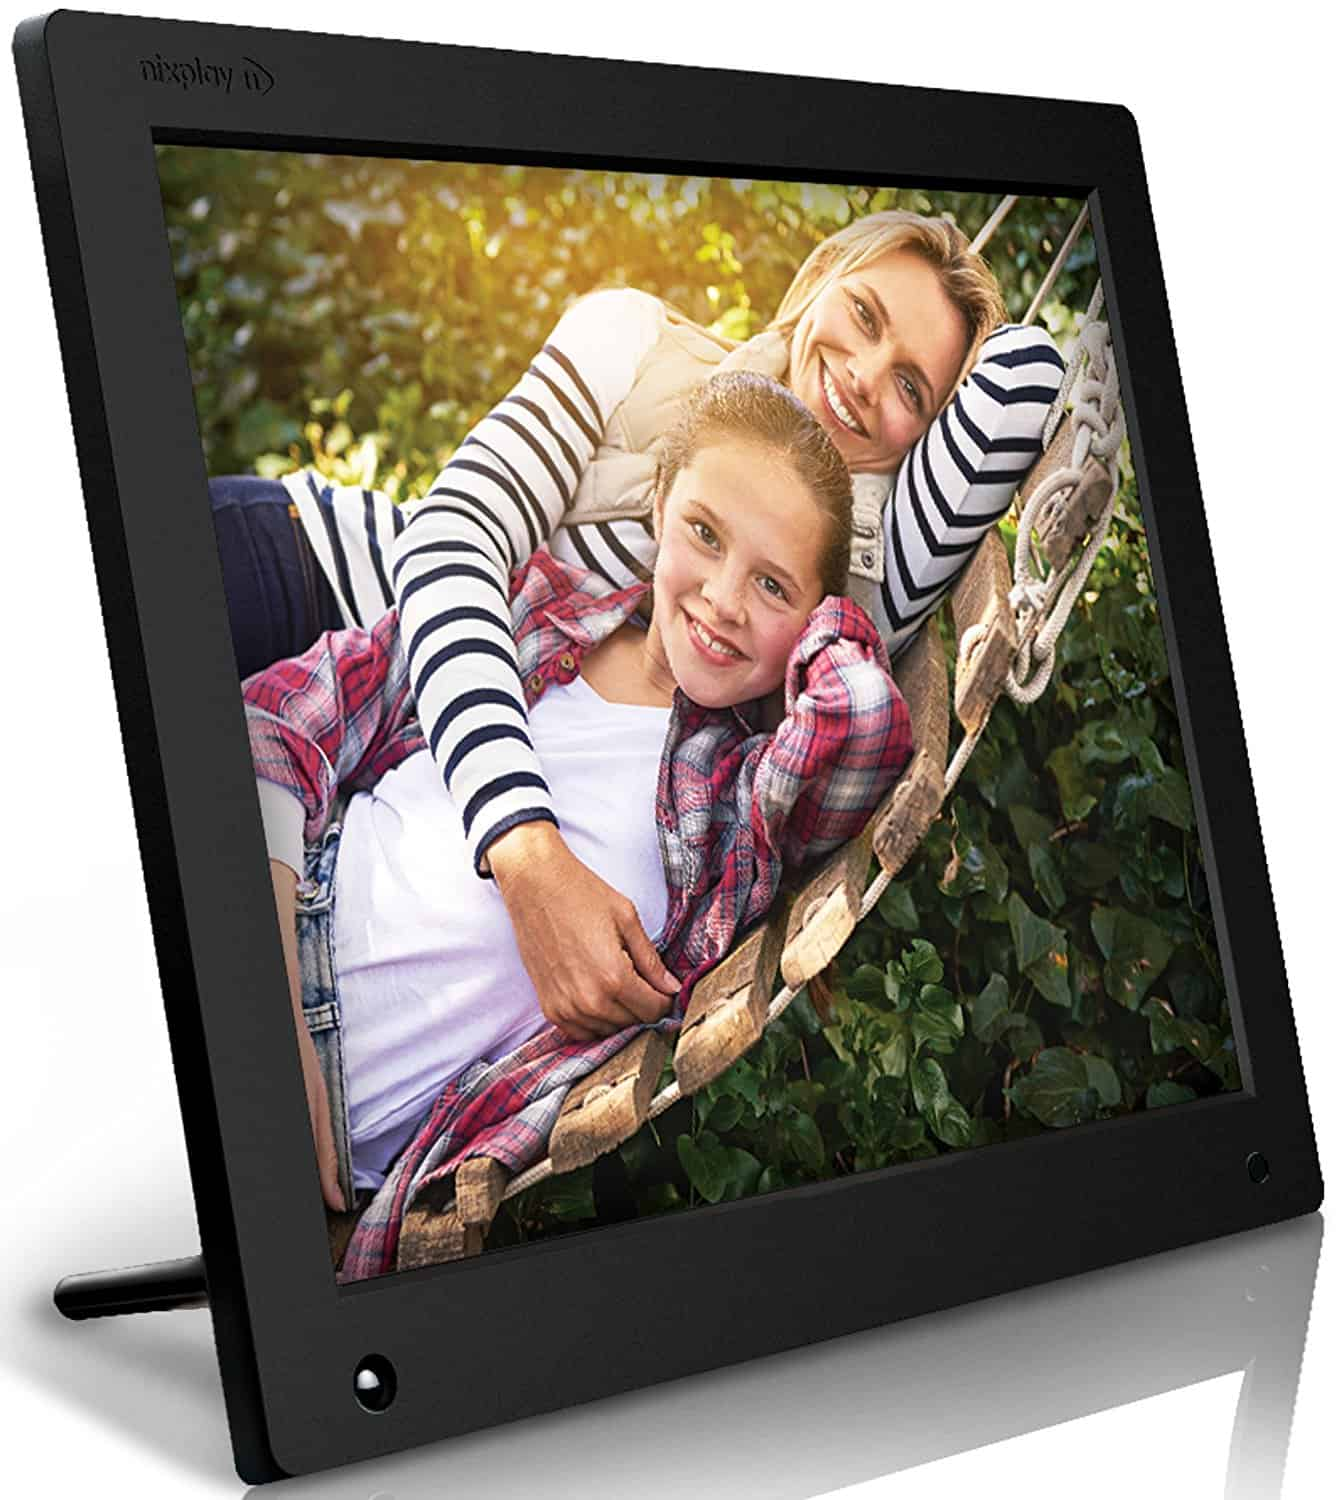 Nixplay Original Digital Photo Frame